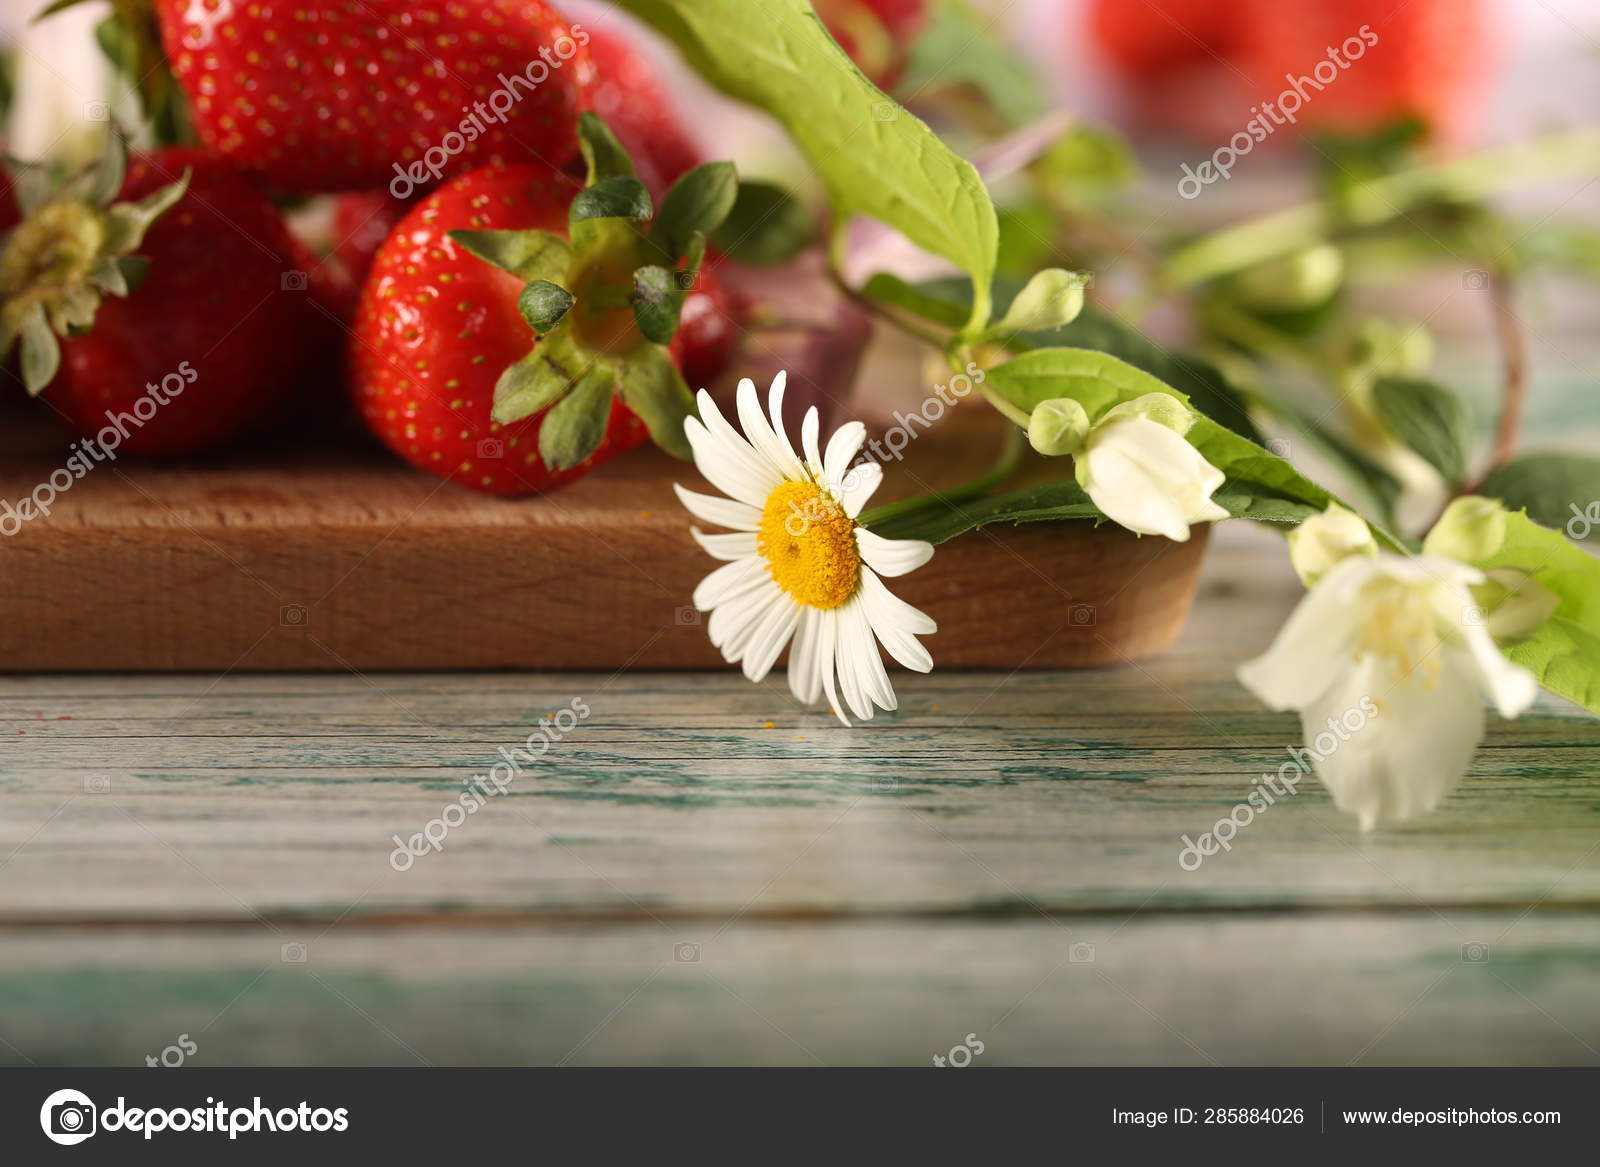 Fresh Strawberries Flowers Table Stock Photo C 26101981 285884026 A wide variety of daisy brown options are you can also choose from children daisy brown, as well as from wedding, mother's day daisy brown, and. https depositphotos com 285884026 stock photo fresh strawberries flowers table html